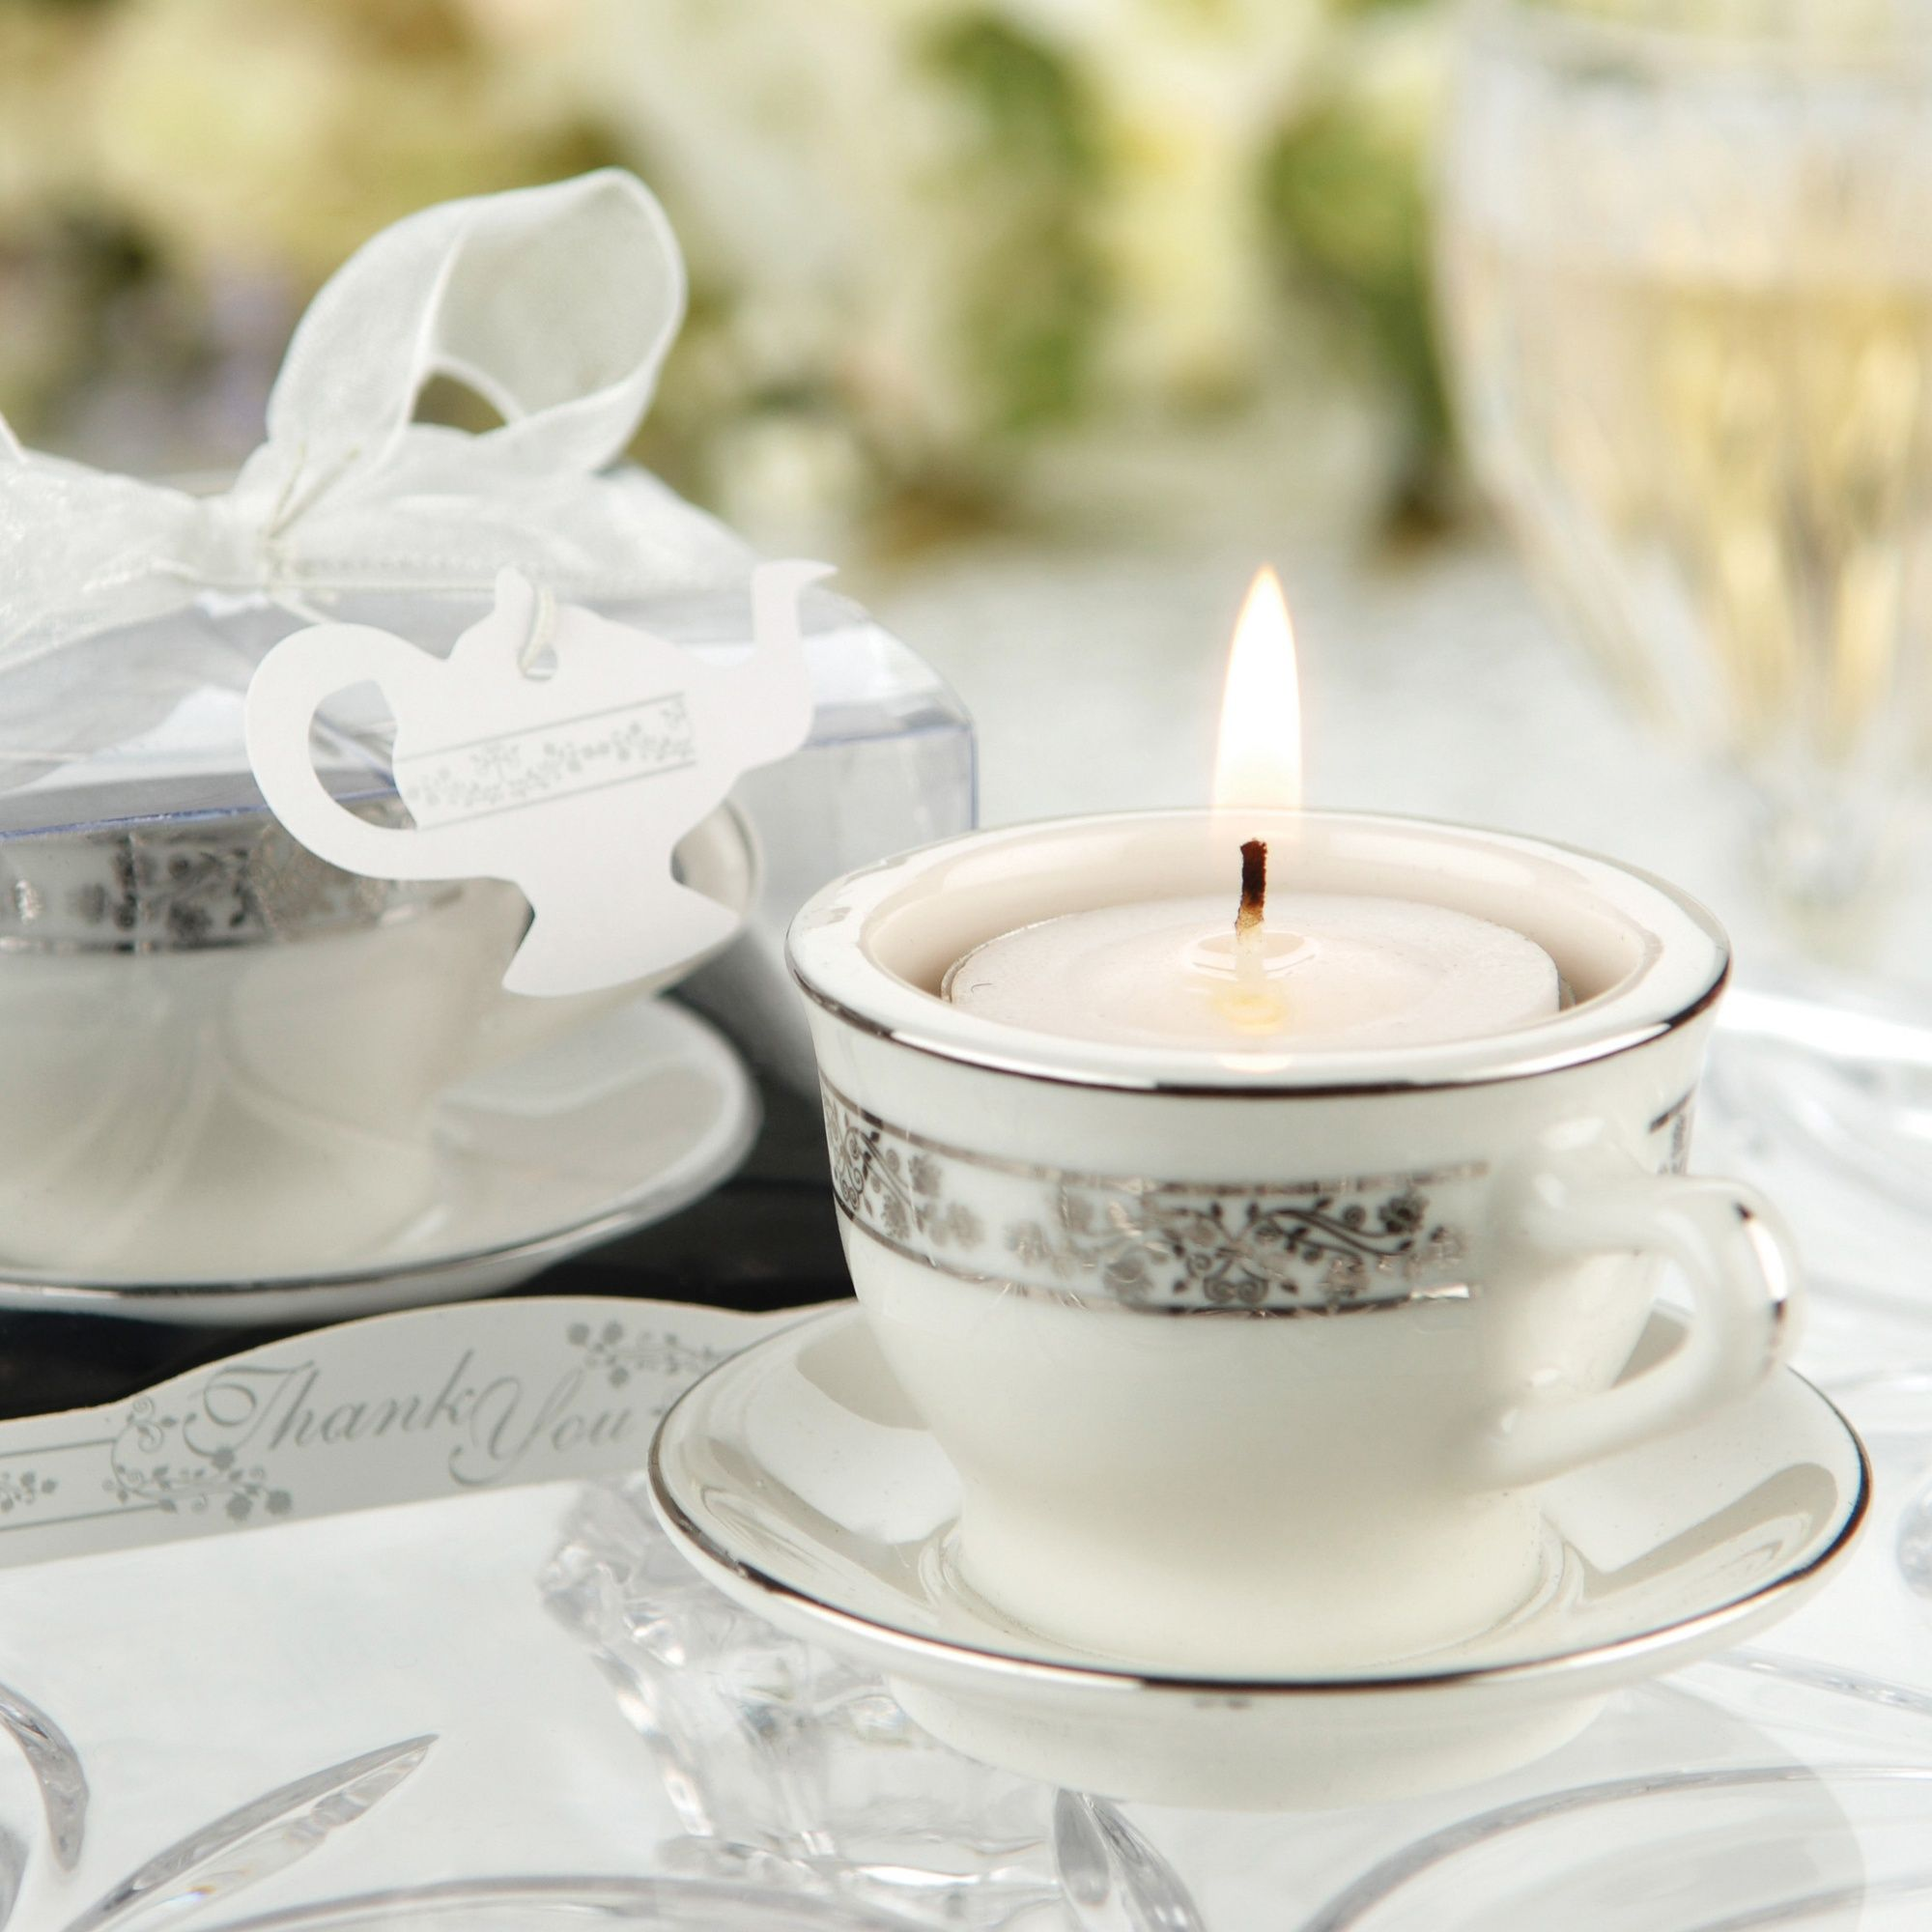 Teacup and Tealight Candle Wedding Favor | #exclusivelyweddings ...